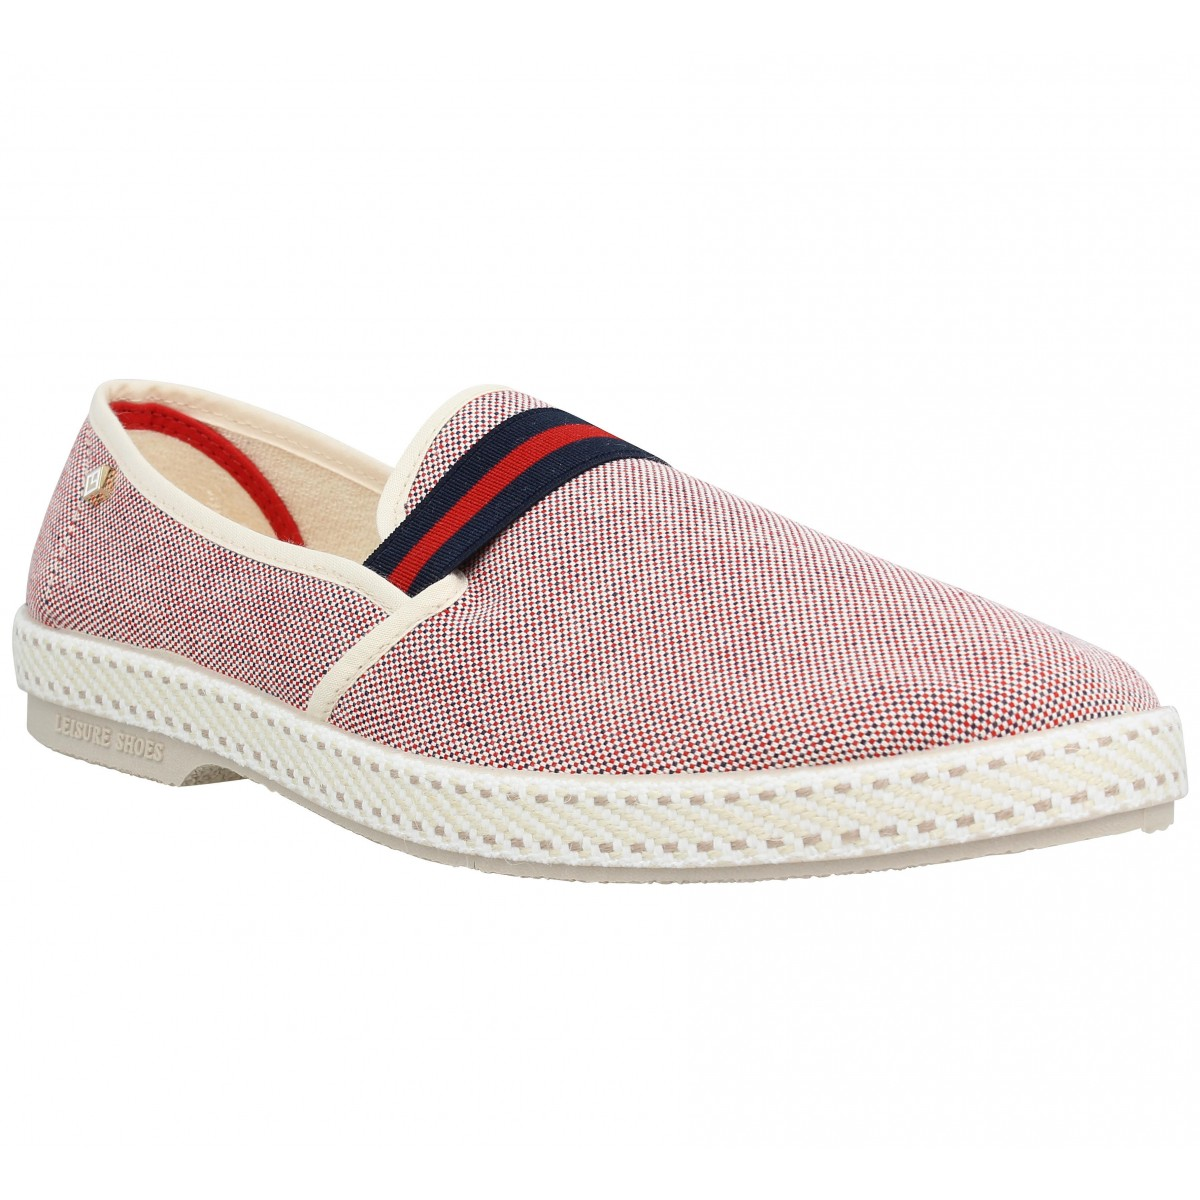 Espadrilles RIVIERAS College toile Homme Rouge